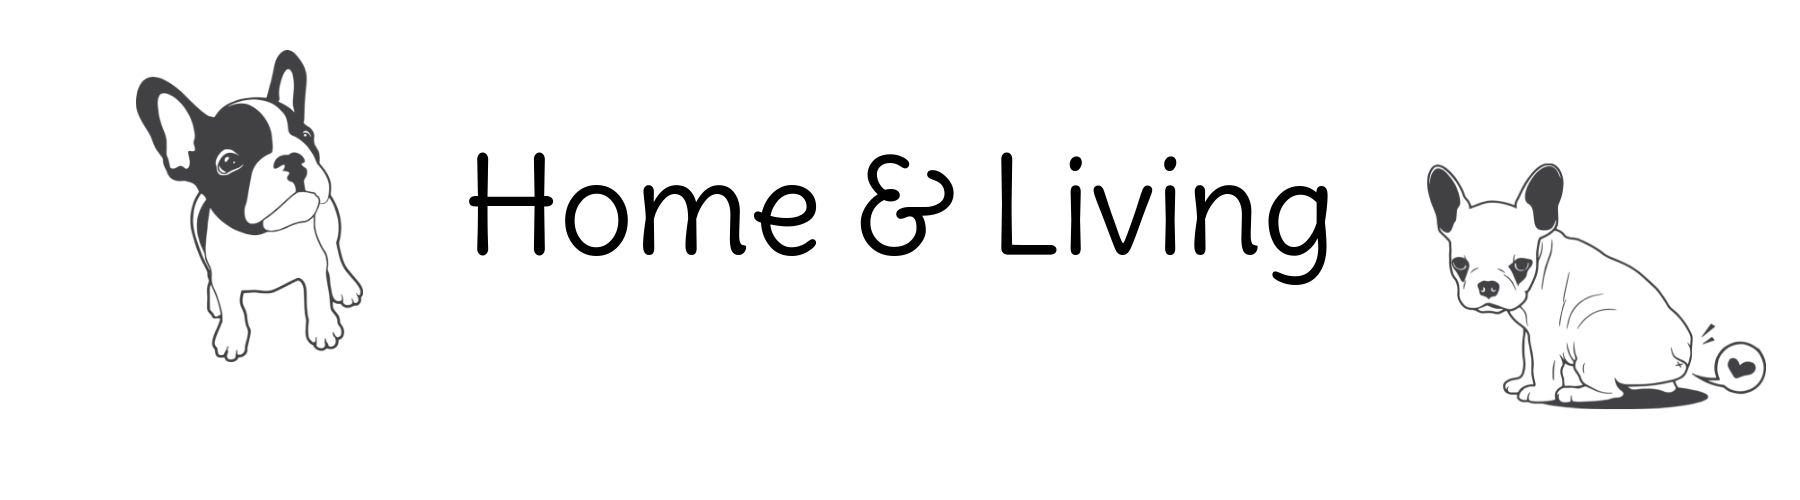 Two French Bulldogs next to the text: Home and Living